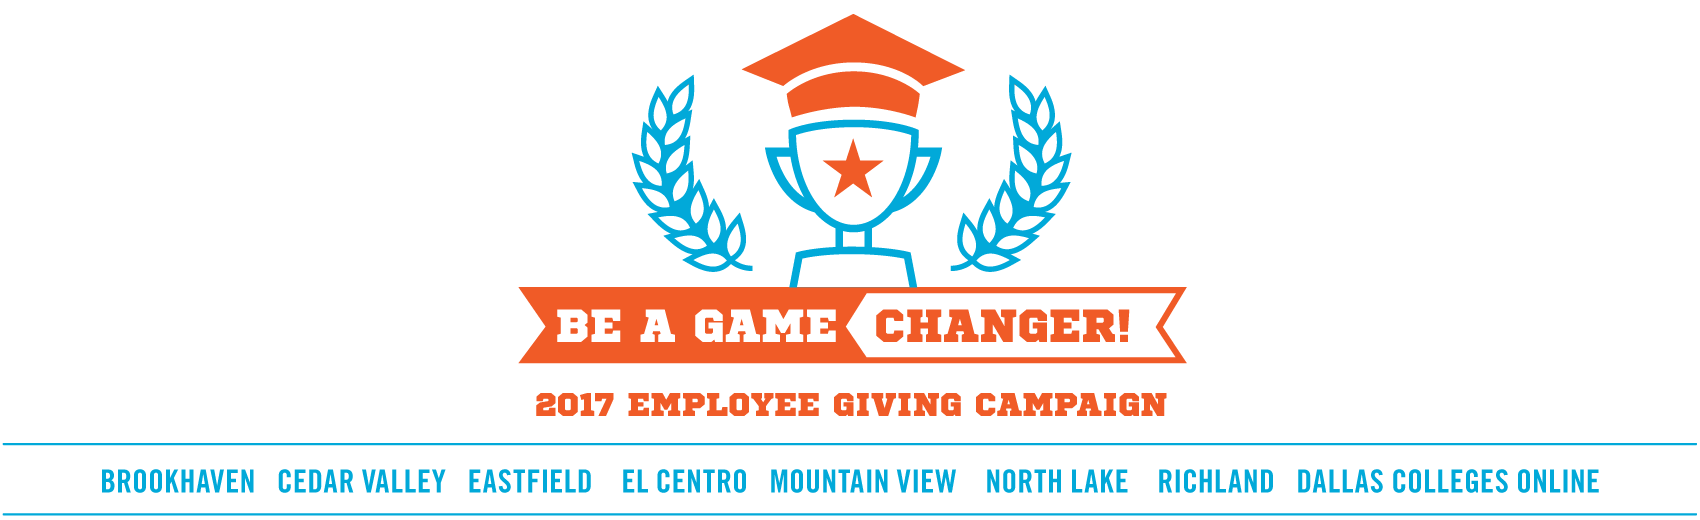 Be a game channger! Employee Giving Campaign